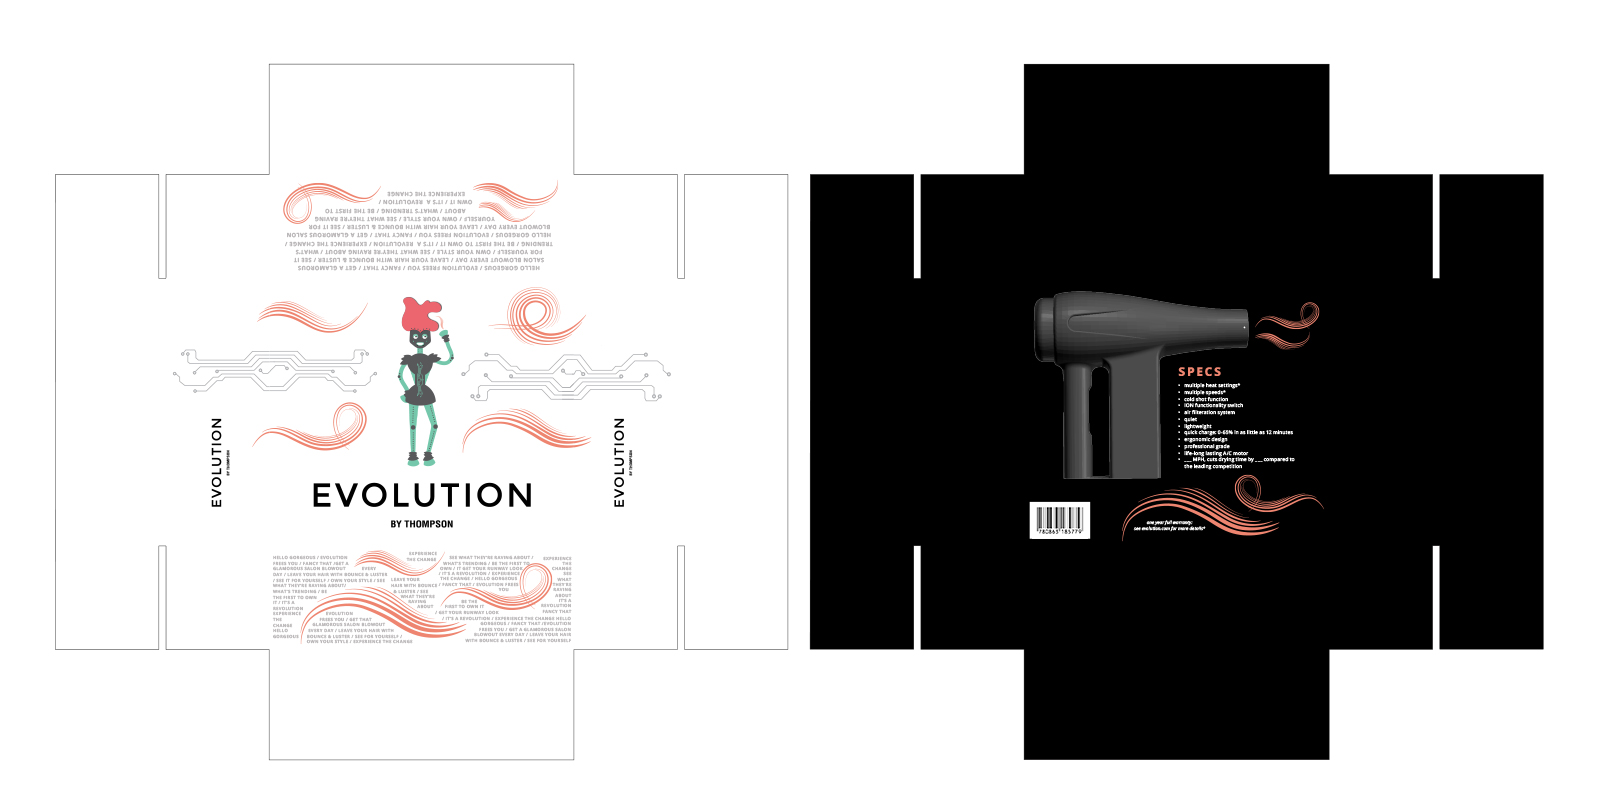 Evolution box design